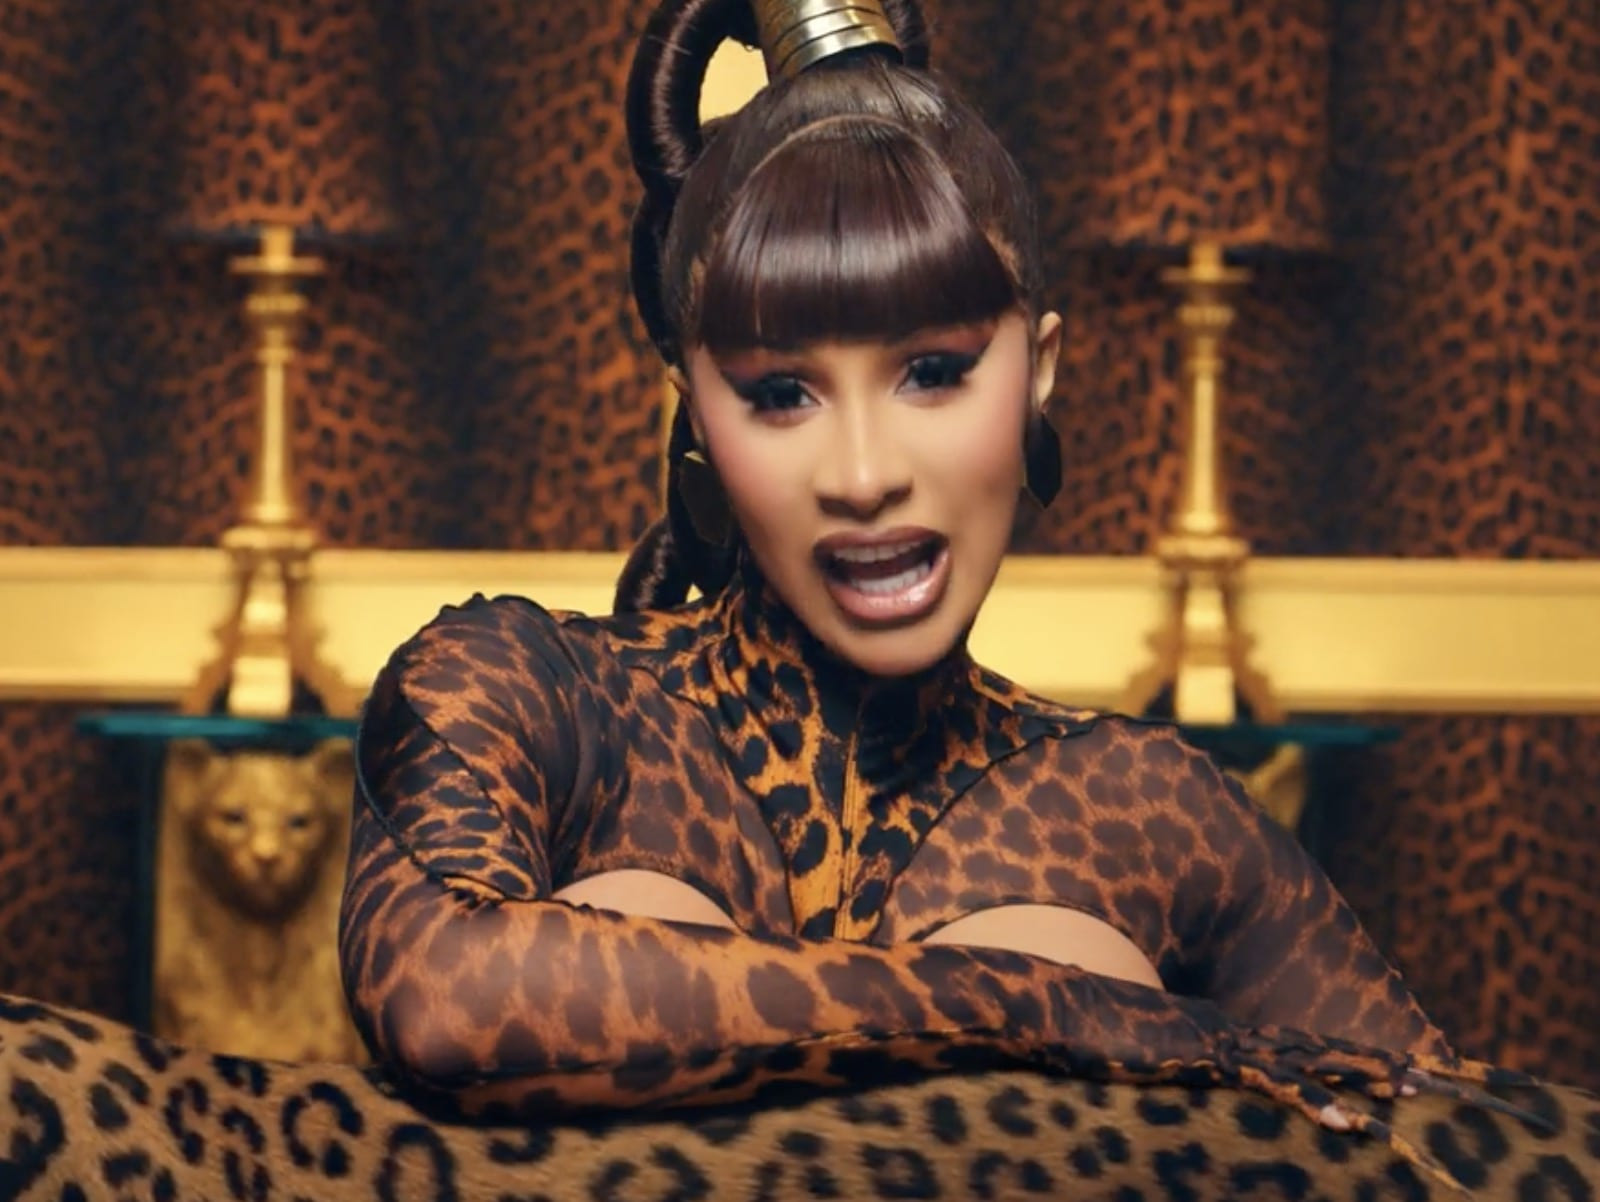 Jesus is not the reason for your success - Nigerian man tells Cardi B after she praised God for the success of her son